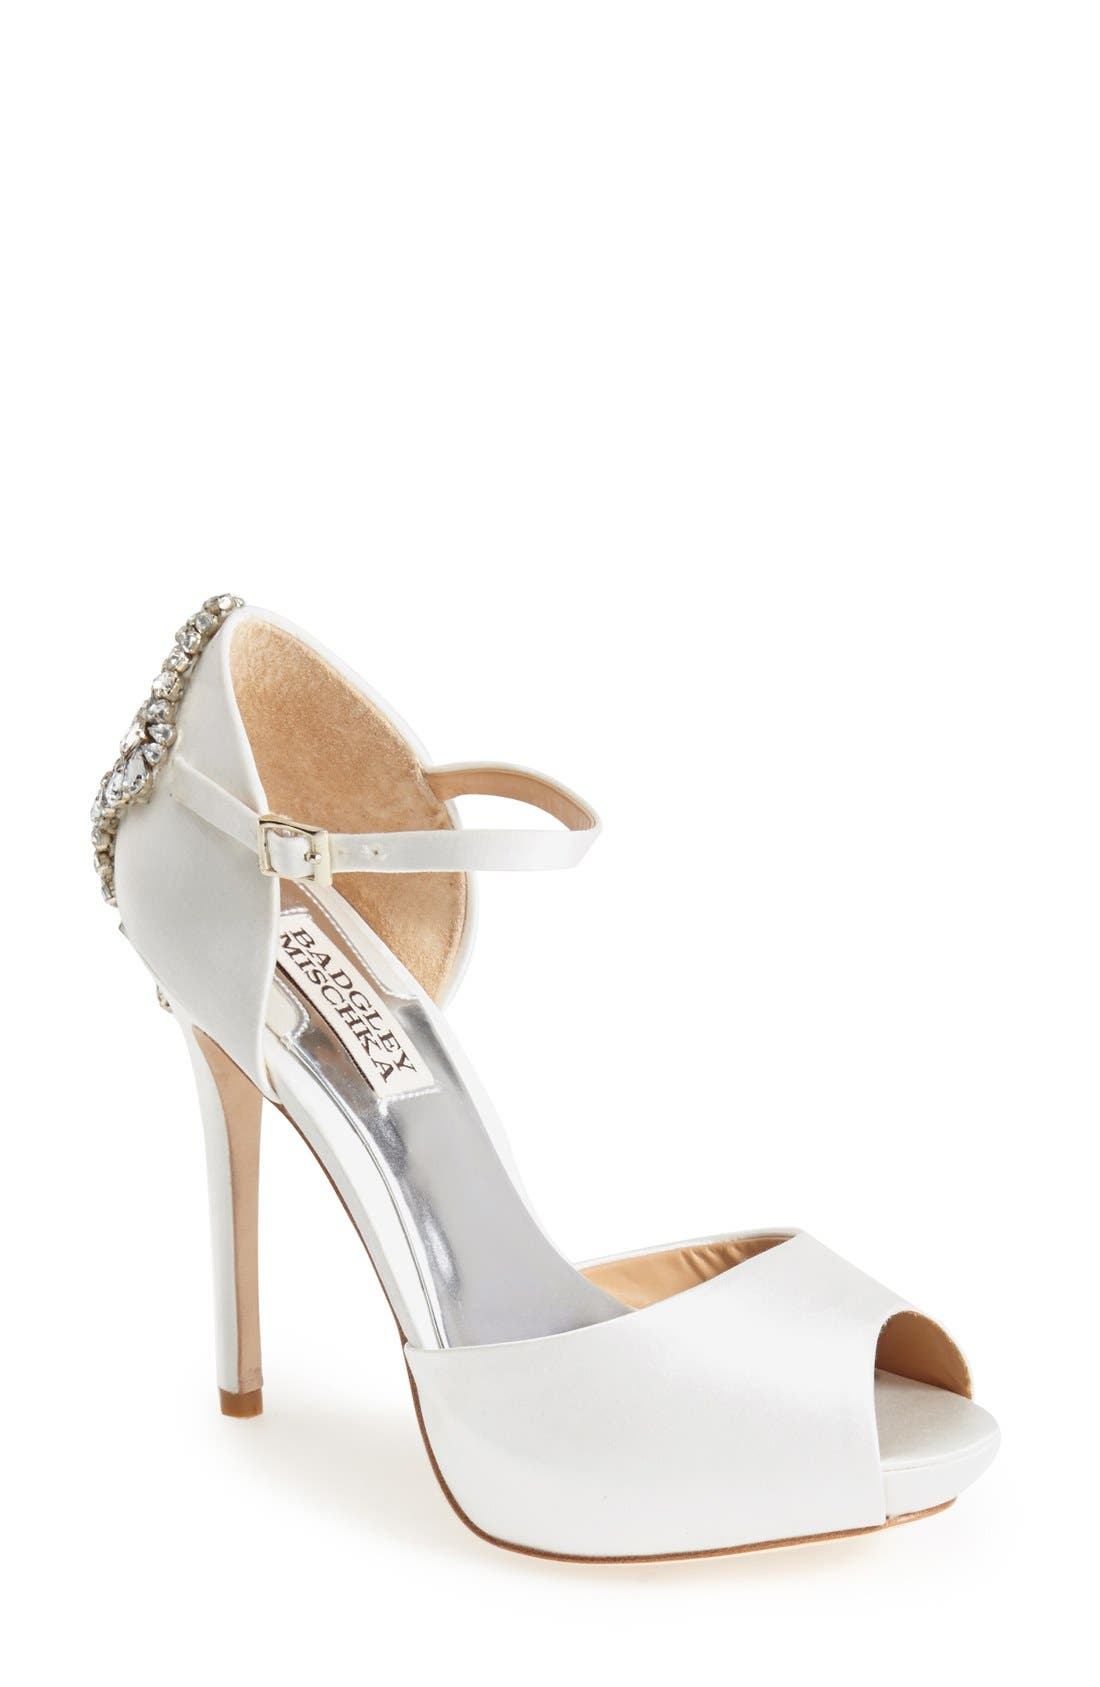 BADGLEY MISCHKA COLLECTION Badgley Mischka 'Gene' Crystal Back Ankle Strap Pump, Main, color, 142